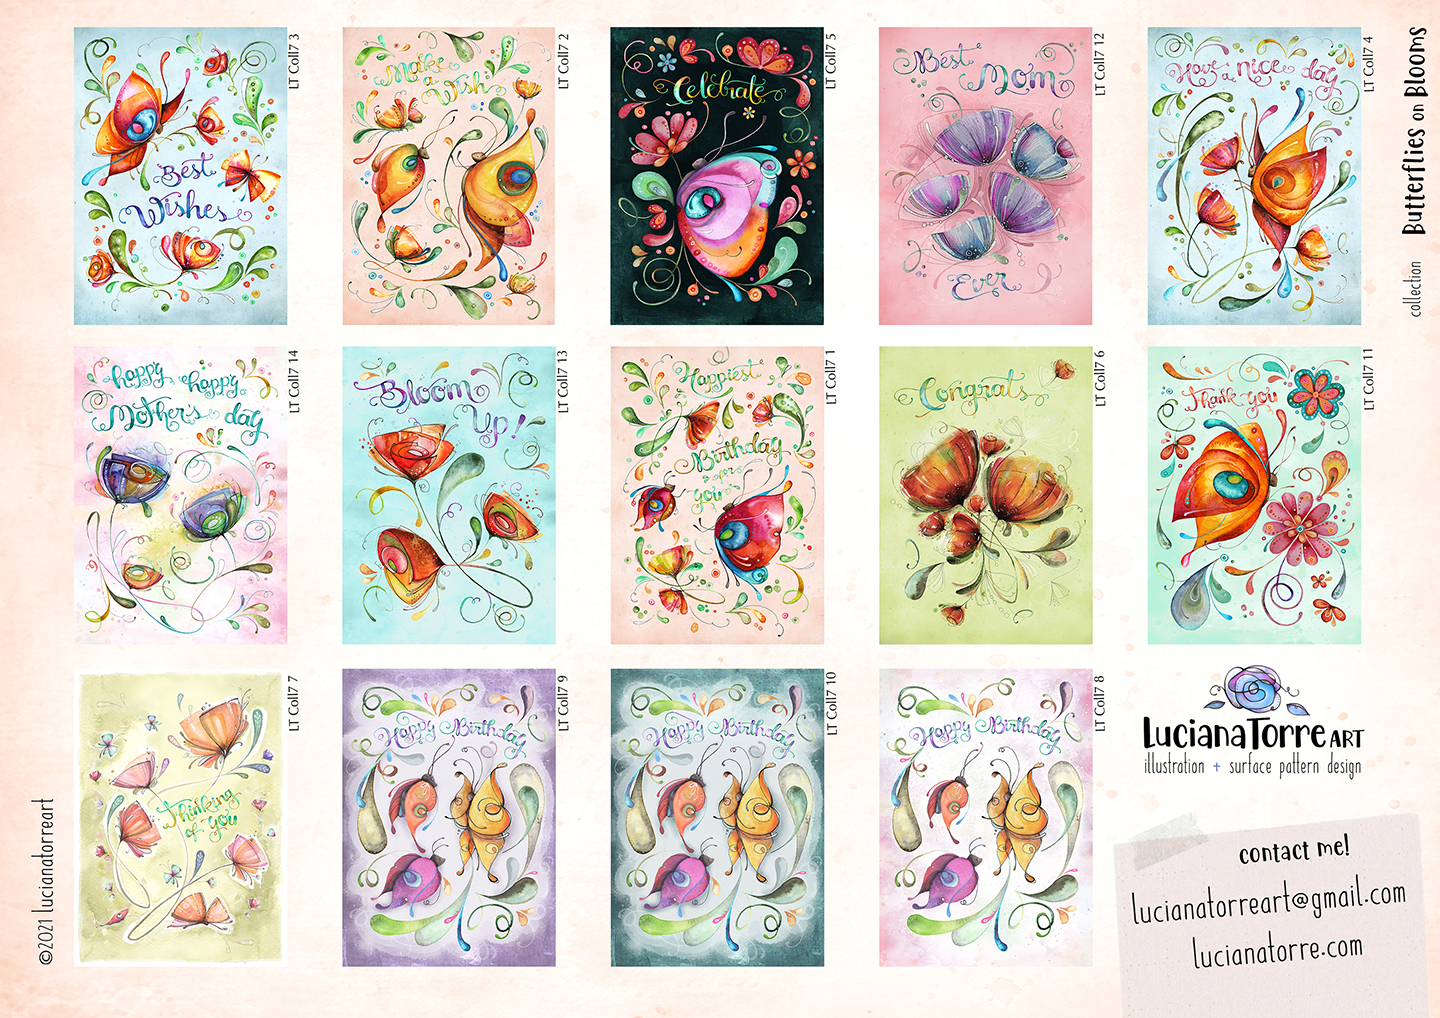 LucianaTorreArt lookbook greeting cards for licensing 11